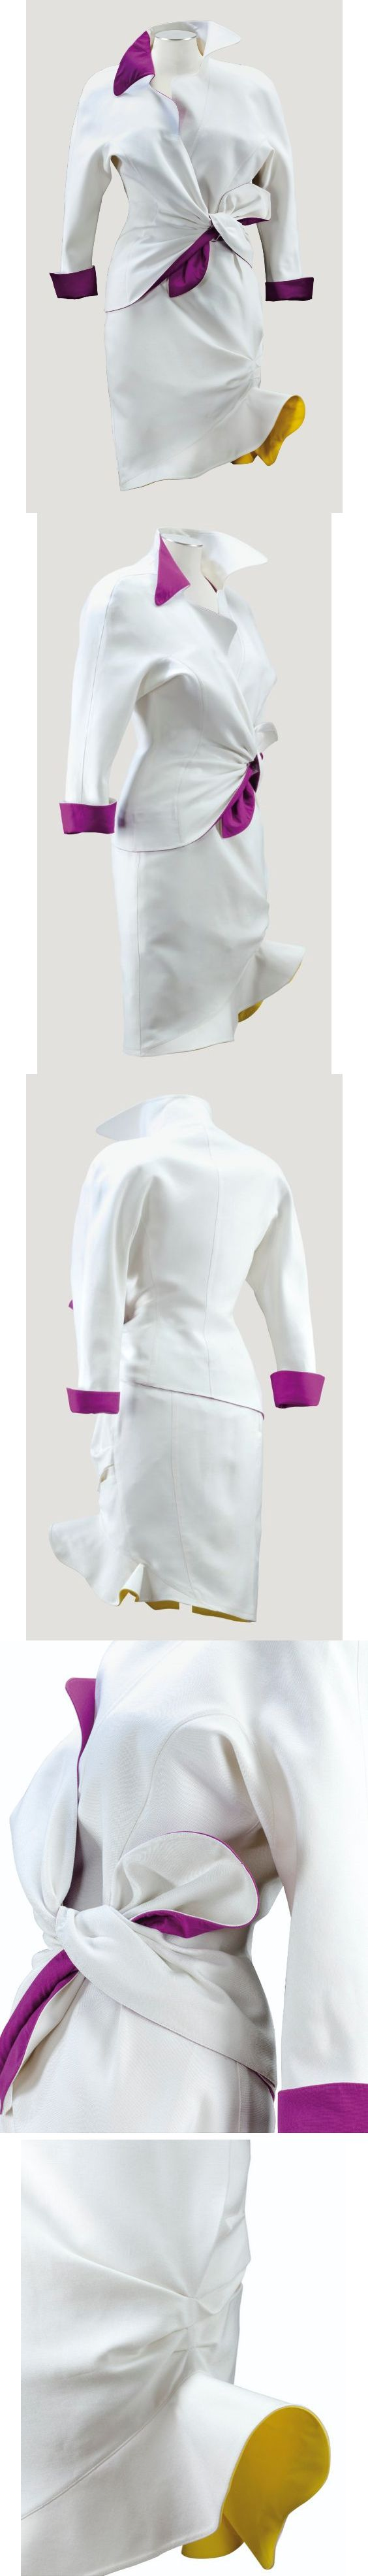 1990, Thierry Mugler. White cotton cocktail suit with facings of yellow and magenta silk. 563 EUR